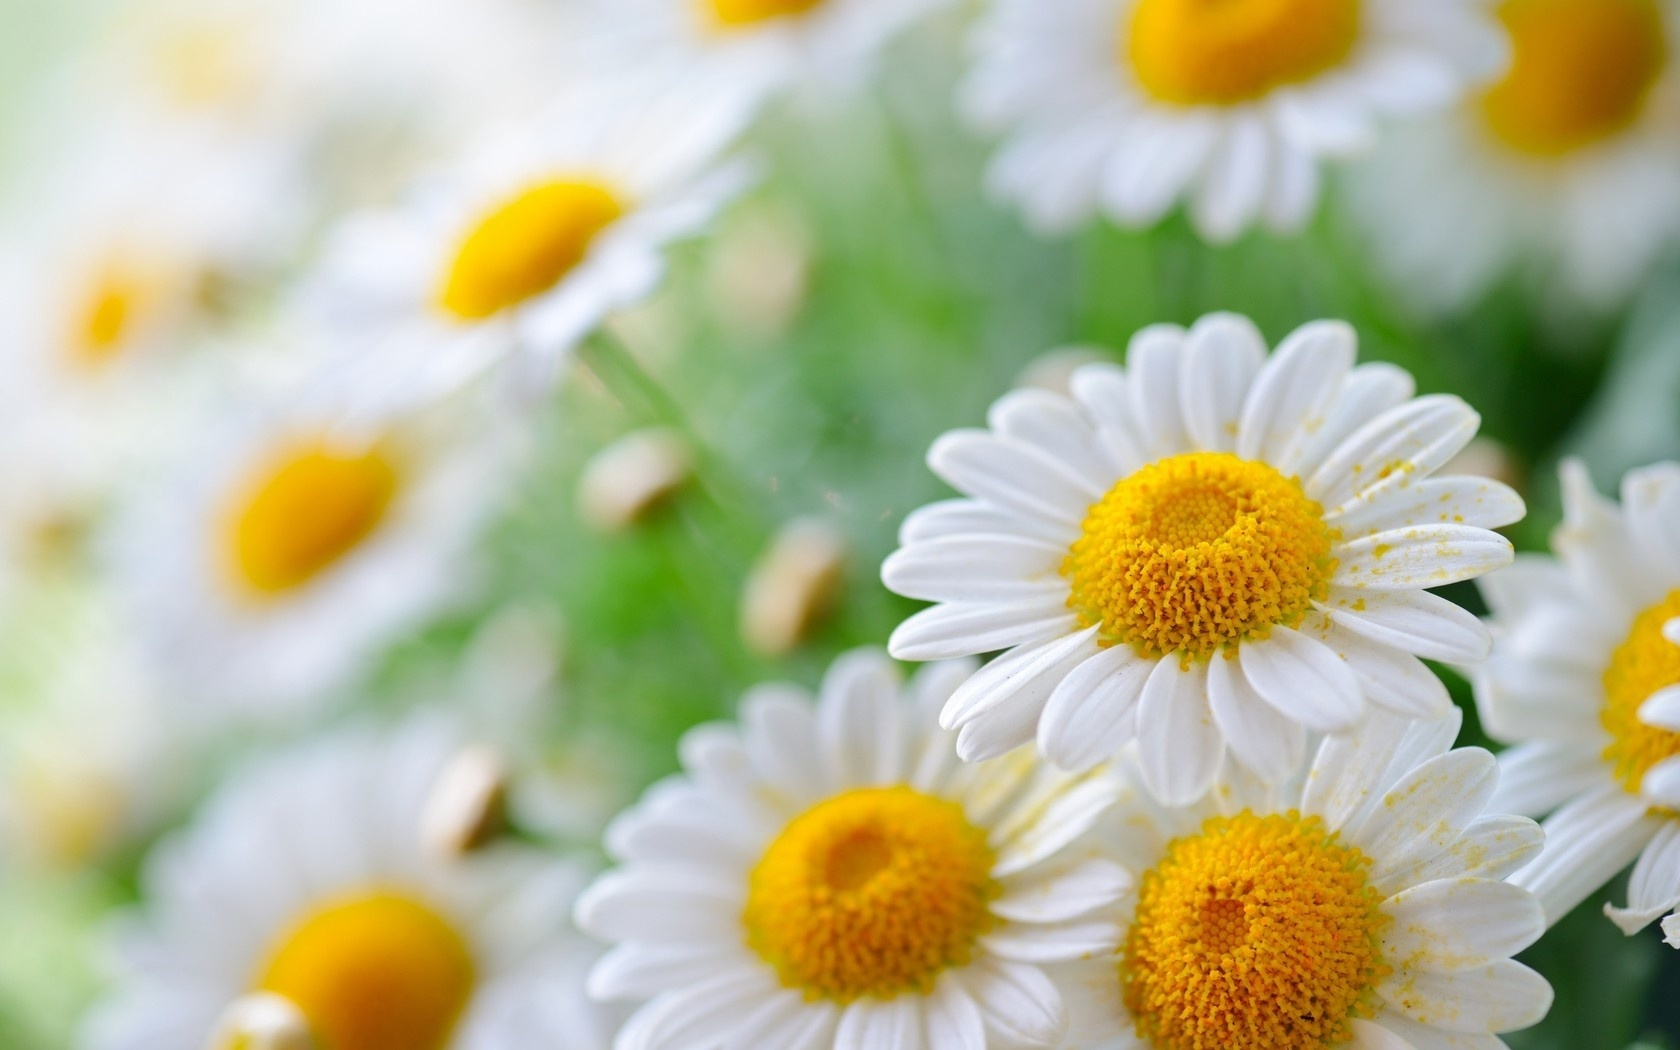 Chamomile - The national flower or Russia